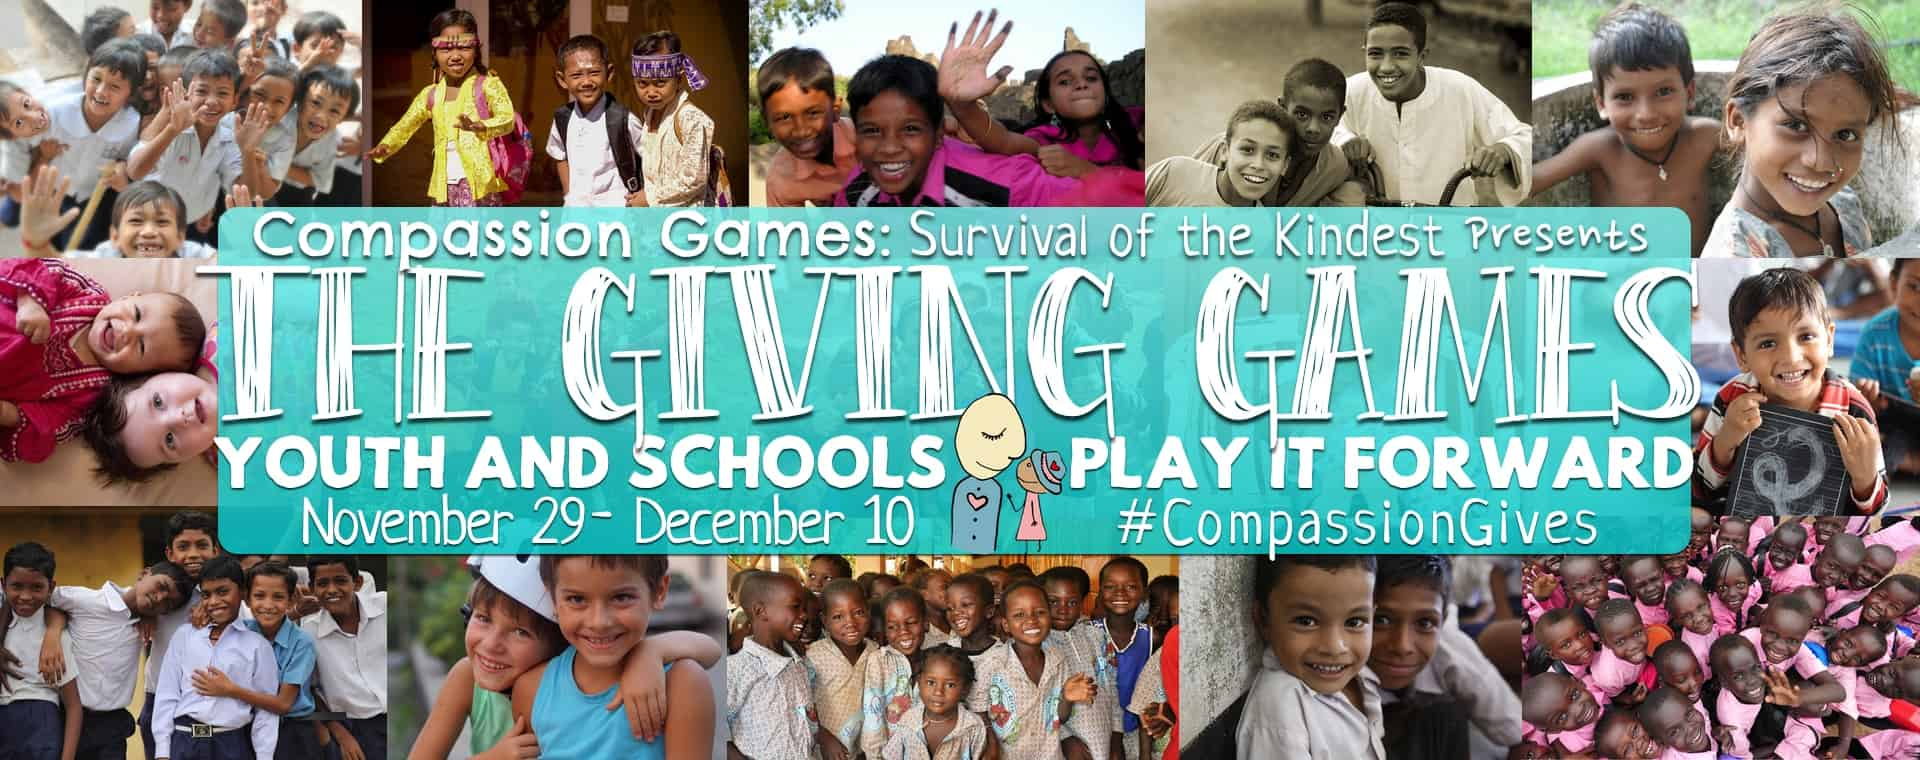 The Giving Games Backstory